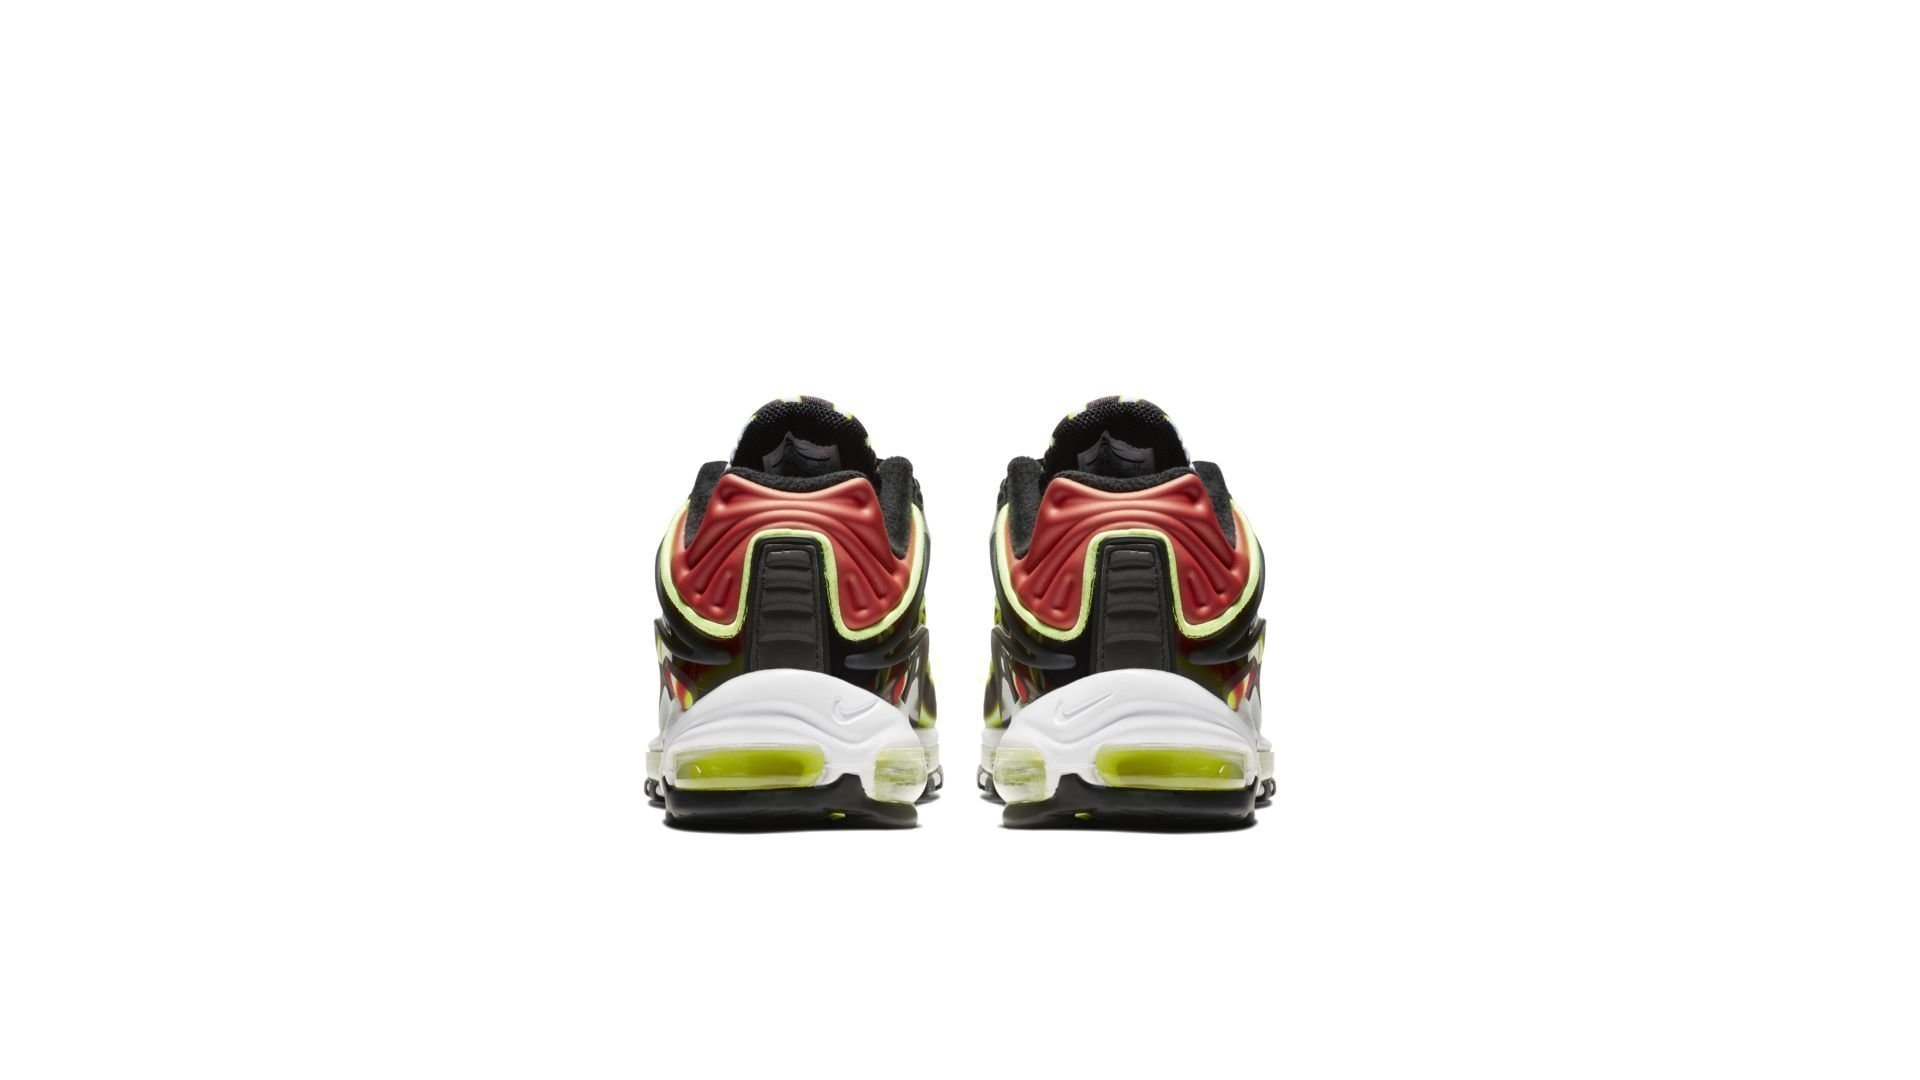 NIKE AIR MAX DELUXE BLACK/VOLT-HABANERO RED-WHITE (AJ7831-003)